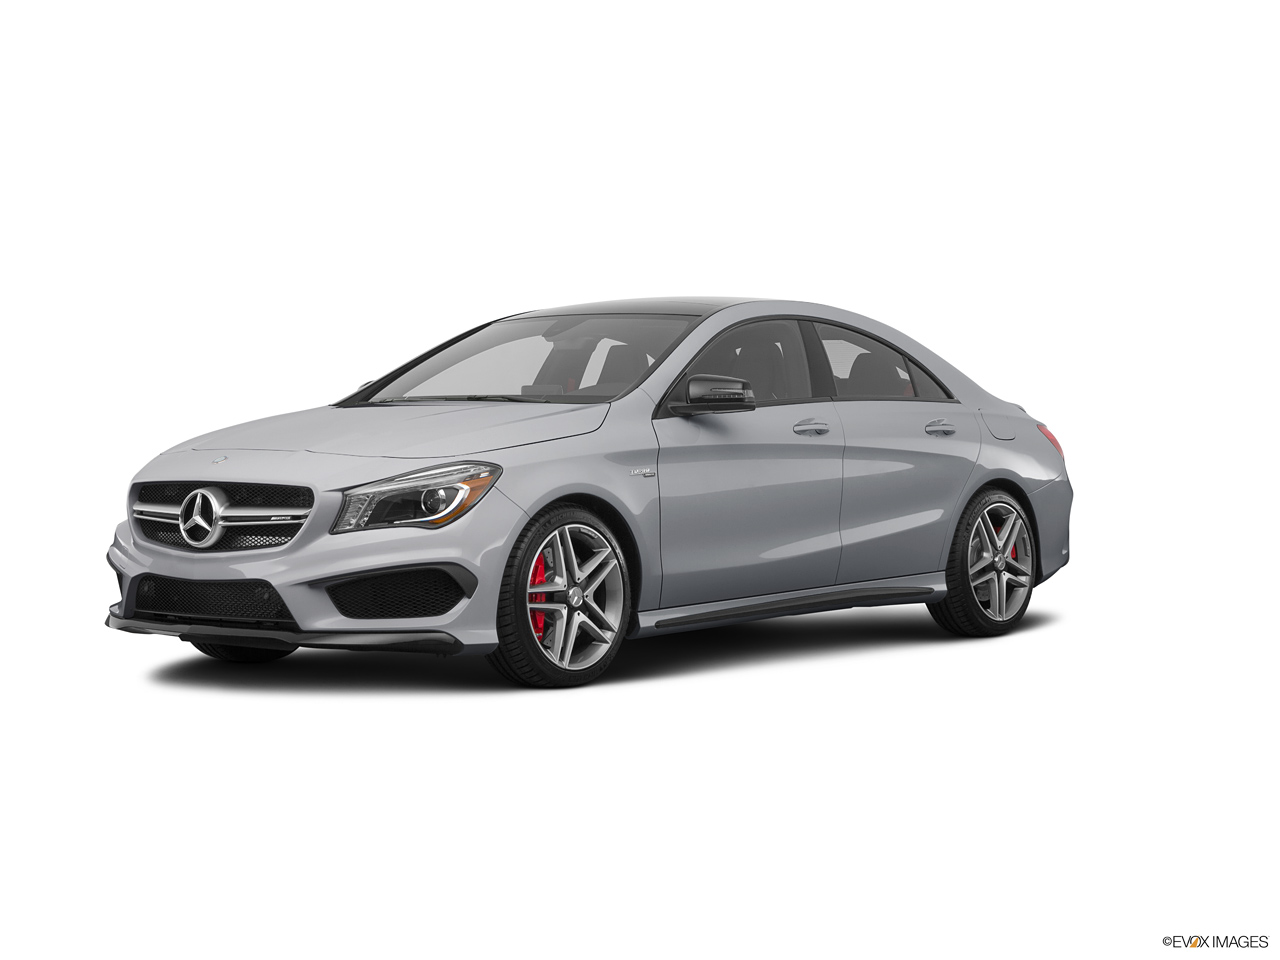 car pictures list for mercedes benz cla class 2016 cla 45 amg uae yallamotor. Black Bedroom Furniture Sets. Home Design Ideas